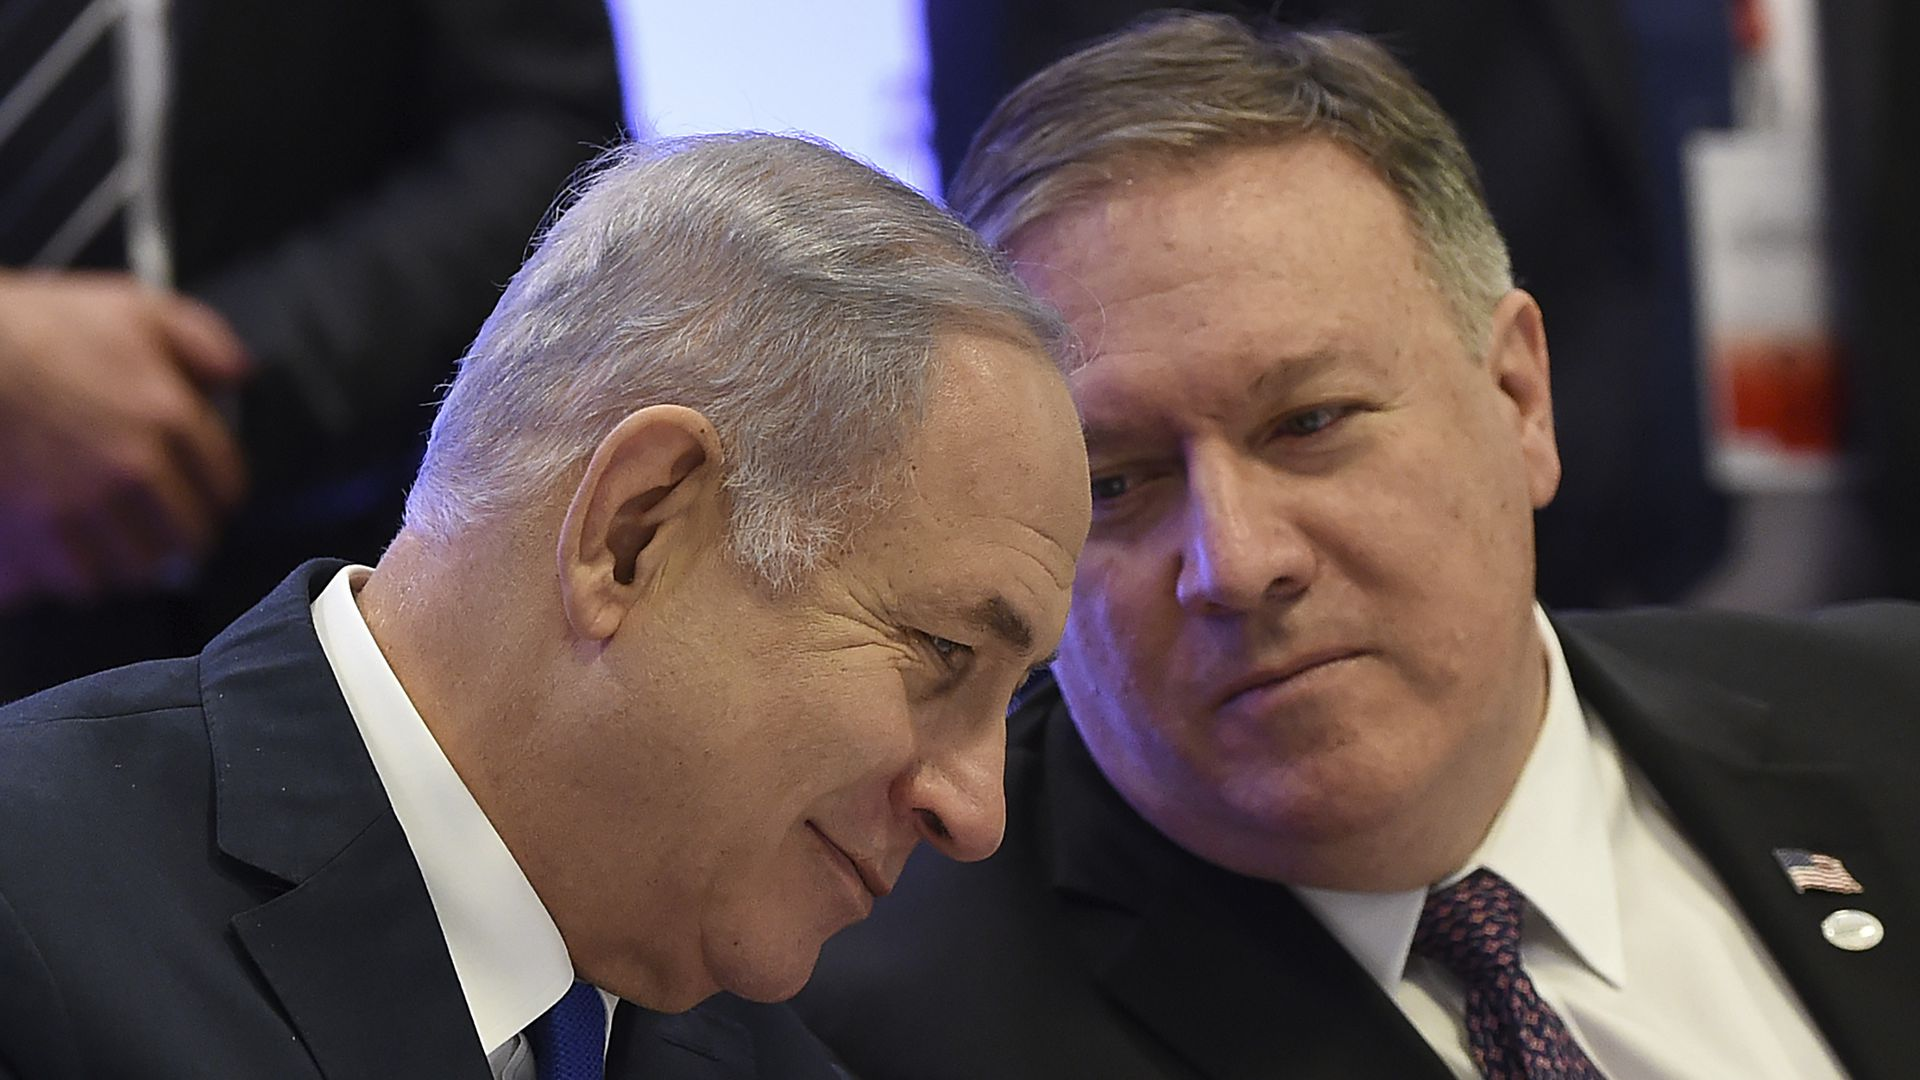 Rare rift: Netanyahu insists he raised West Bank annexation with Pompeo